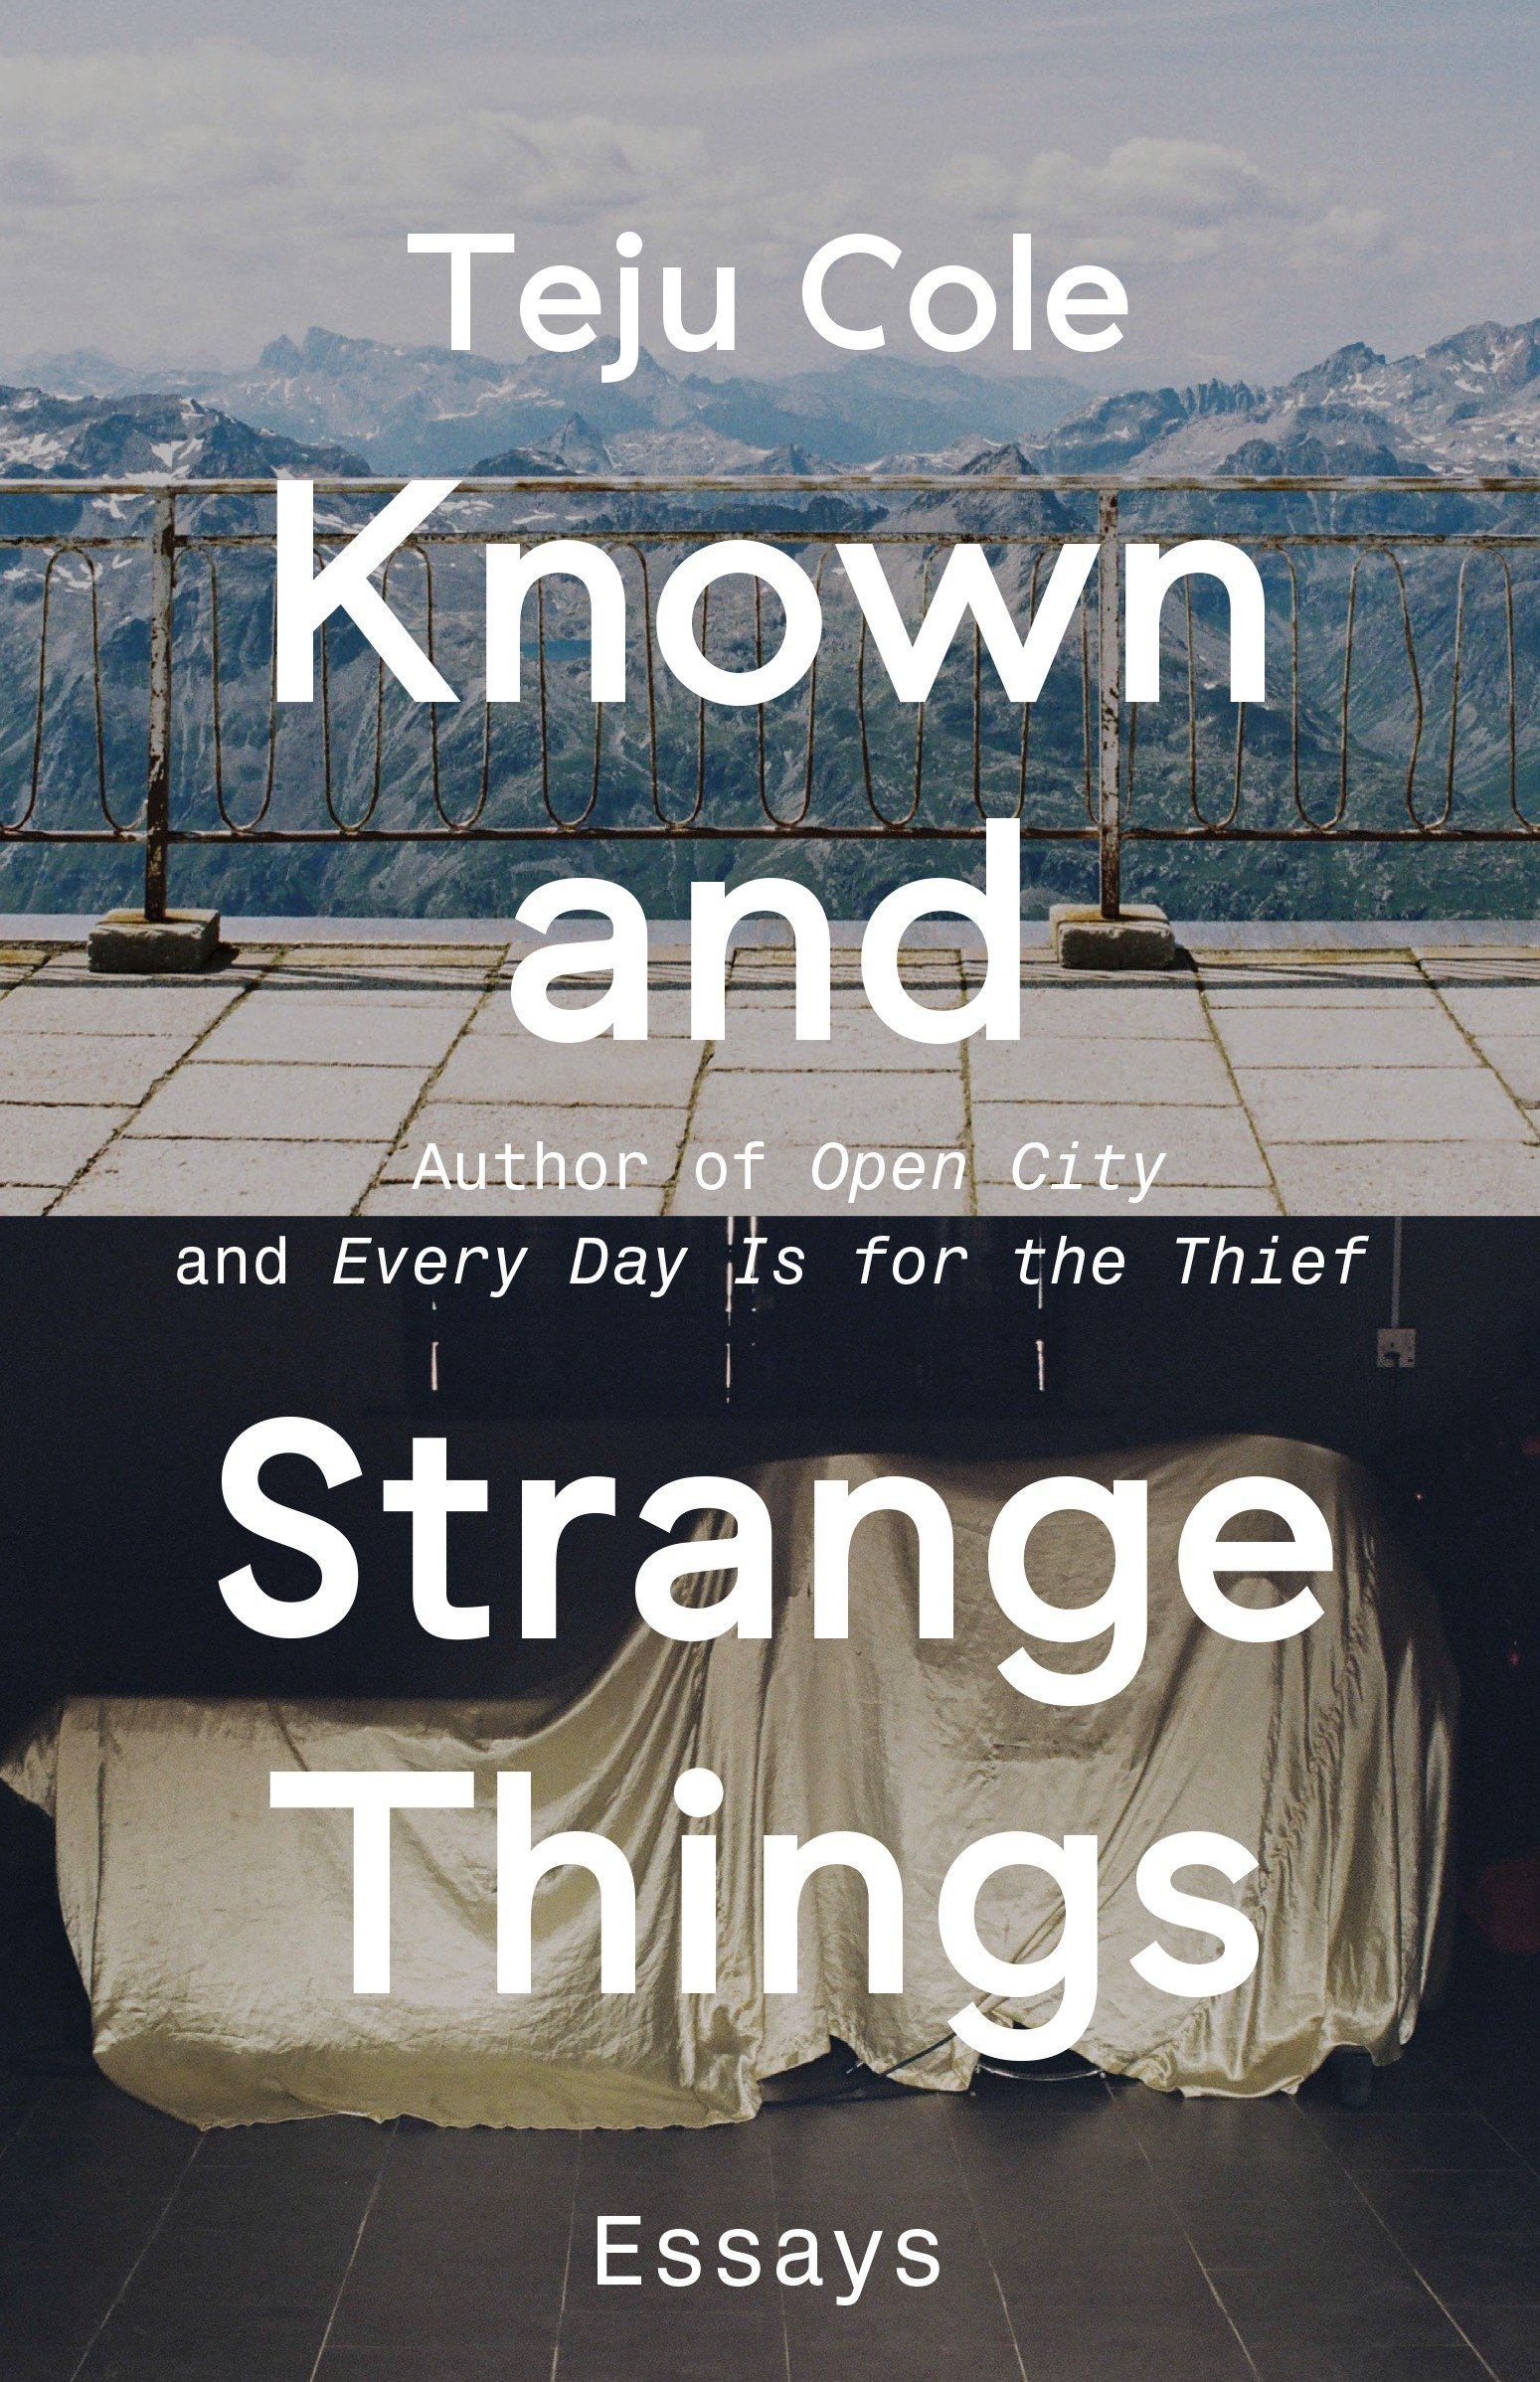 Known and Strange Things: Essays: Teju Cole: 9780812989786